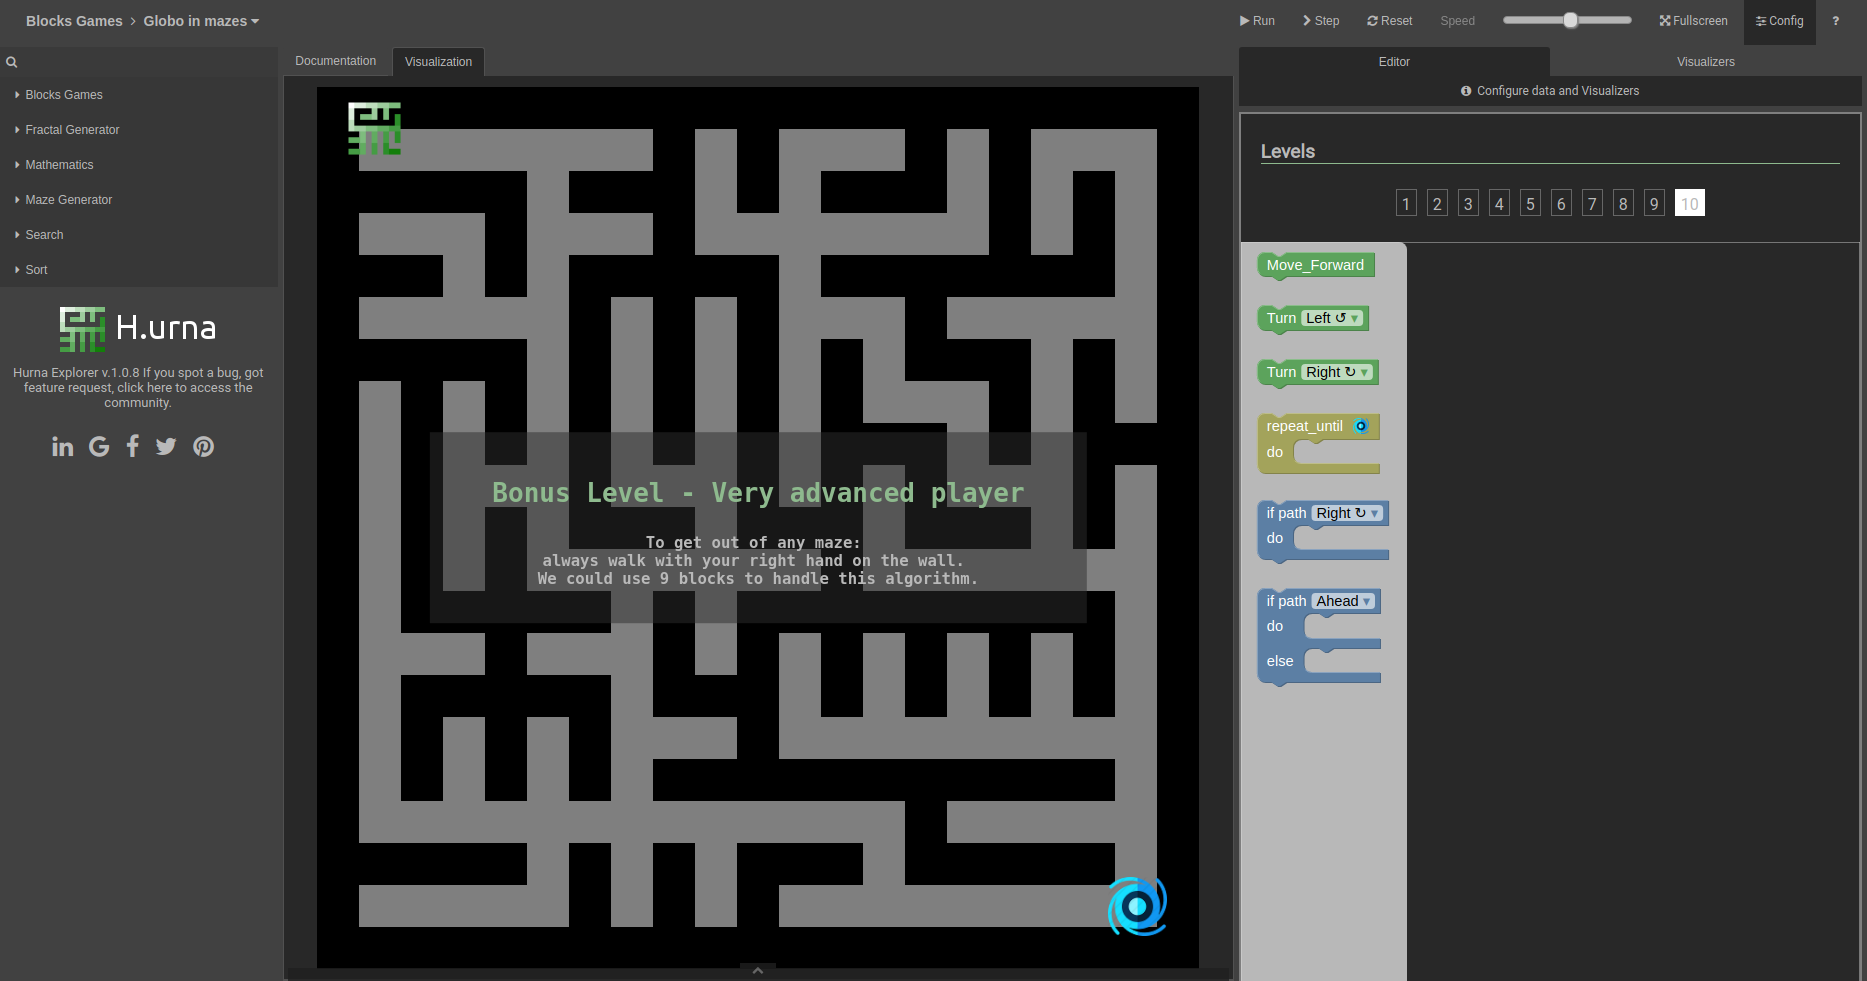 Screenshot Labyrinth - H.urna Blocks - Globo in mazes - Level 10